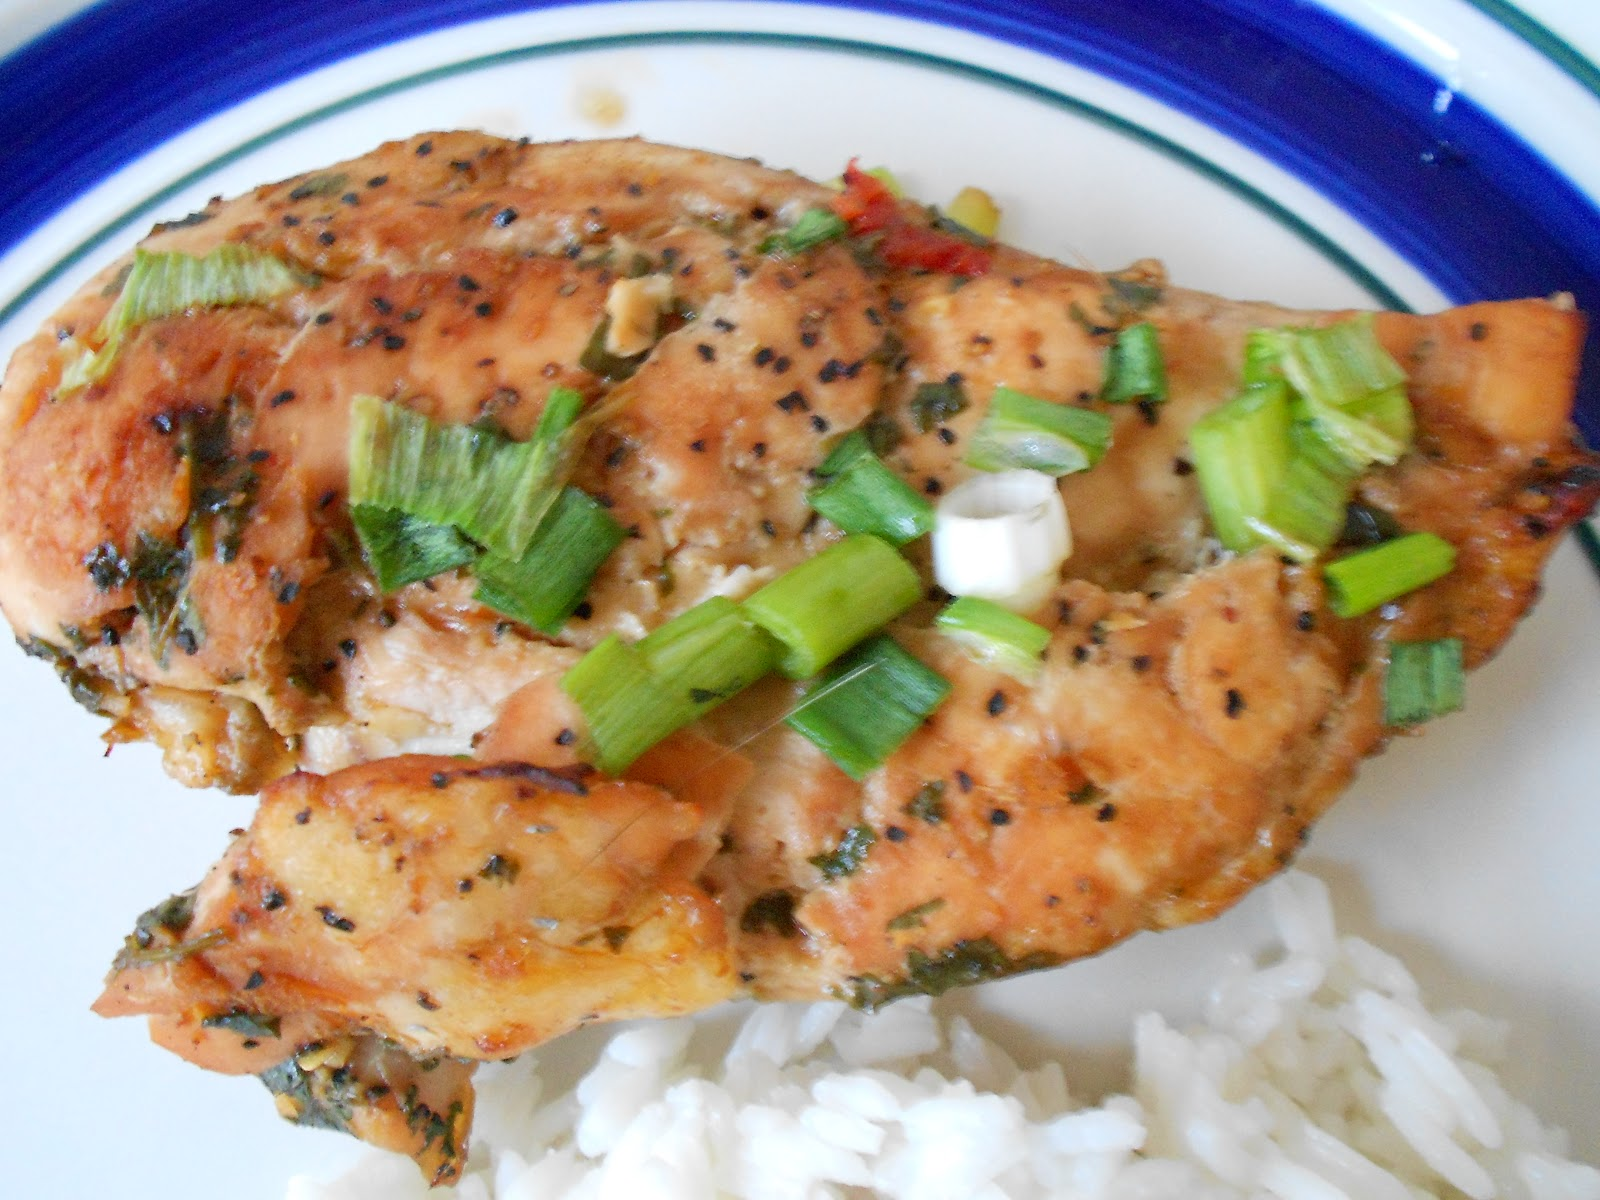 The Pub and Grub Forum: Ginger and Cilantro Baked Tilapia (Chicken)